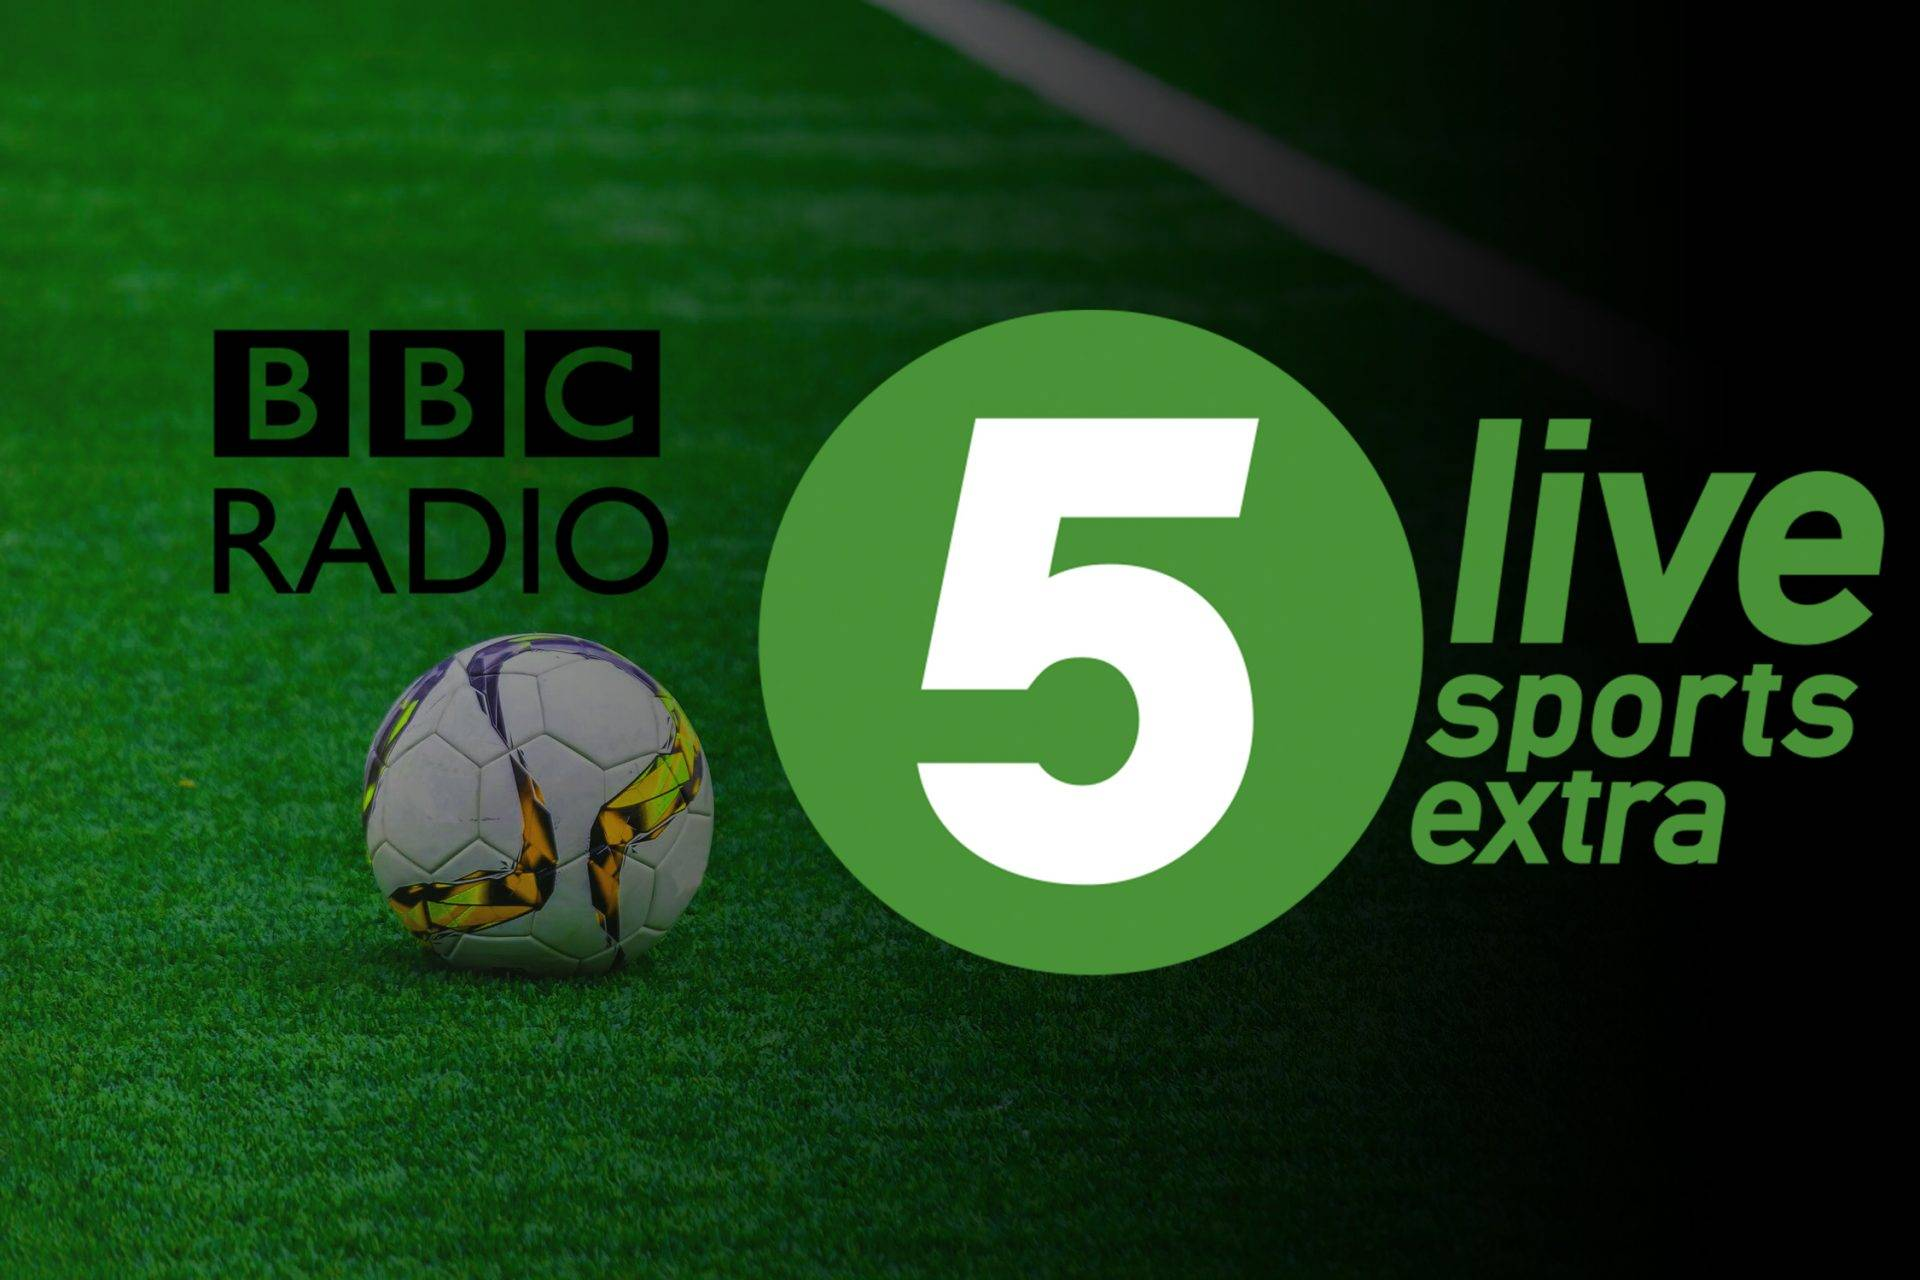 BBC Radio 5 Live Sports Extra